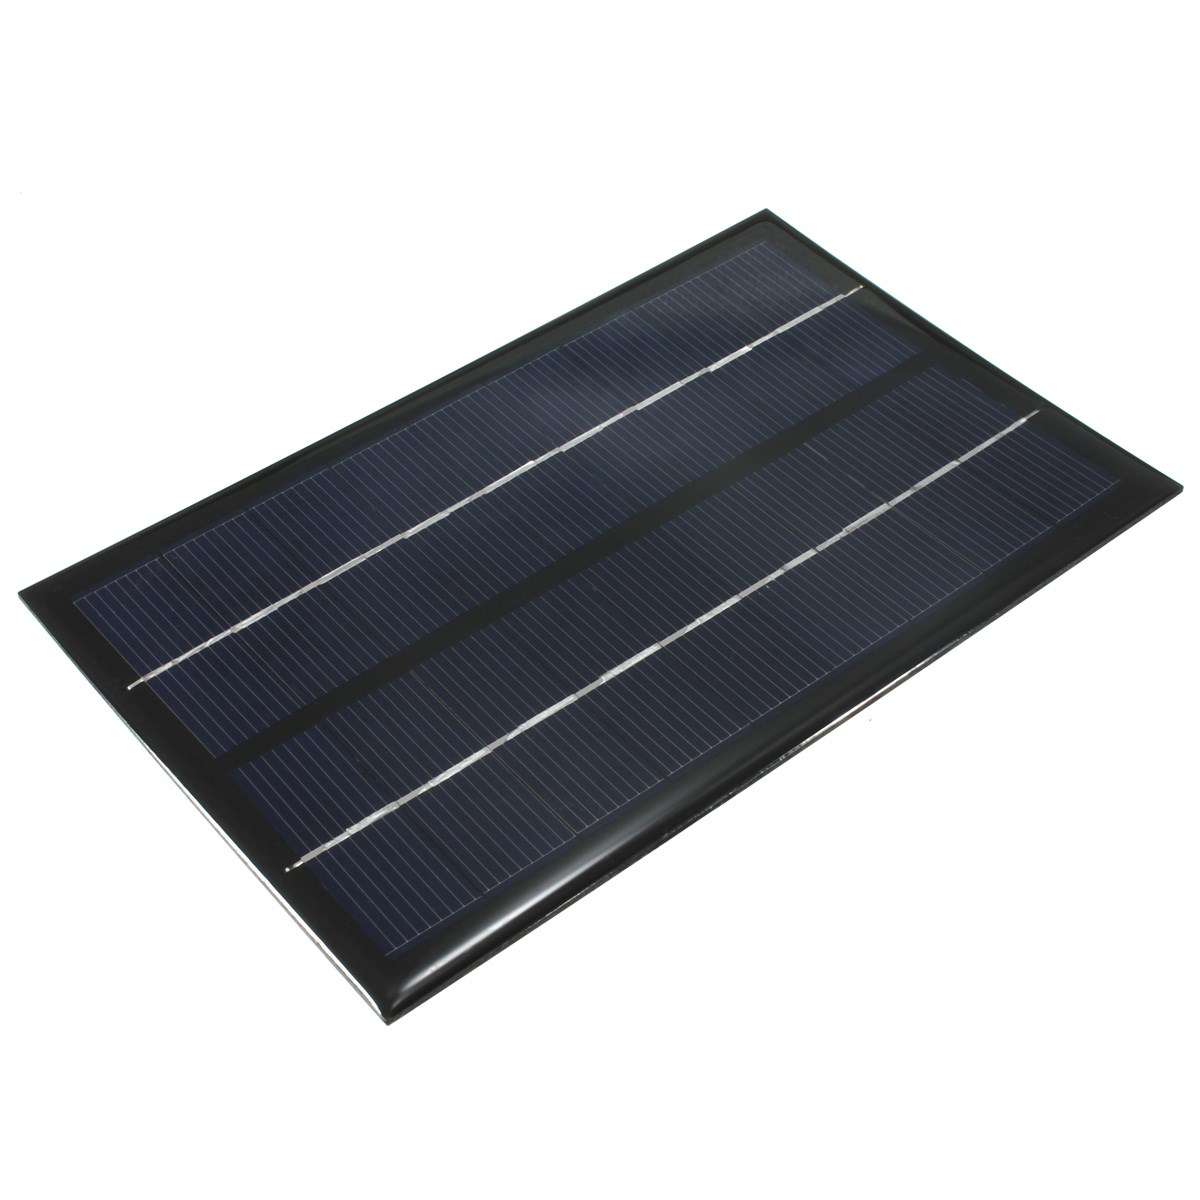 Hot Sale 9V 3W Monocrystalline Silicon poly Epoxy solar Panel small solar cell PV module for DIY solar display light 125x195mm(China (Mainland))